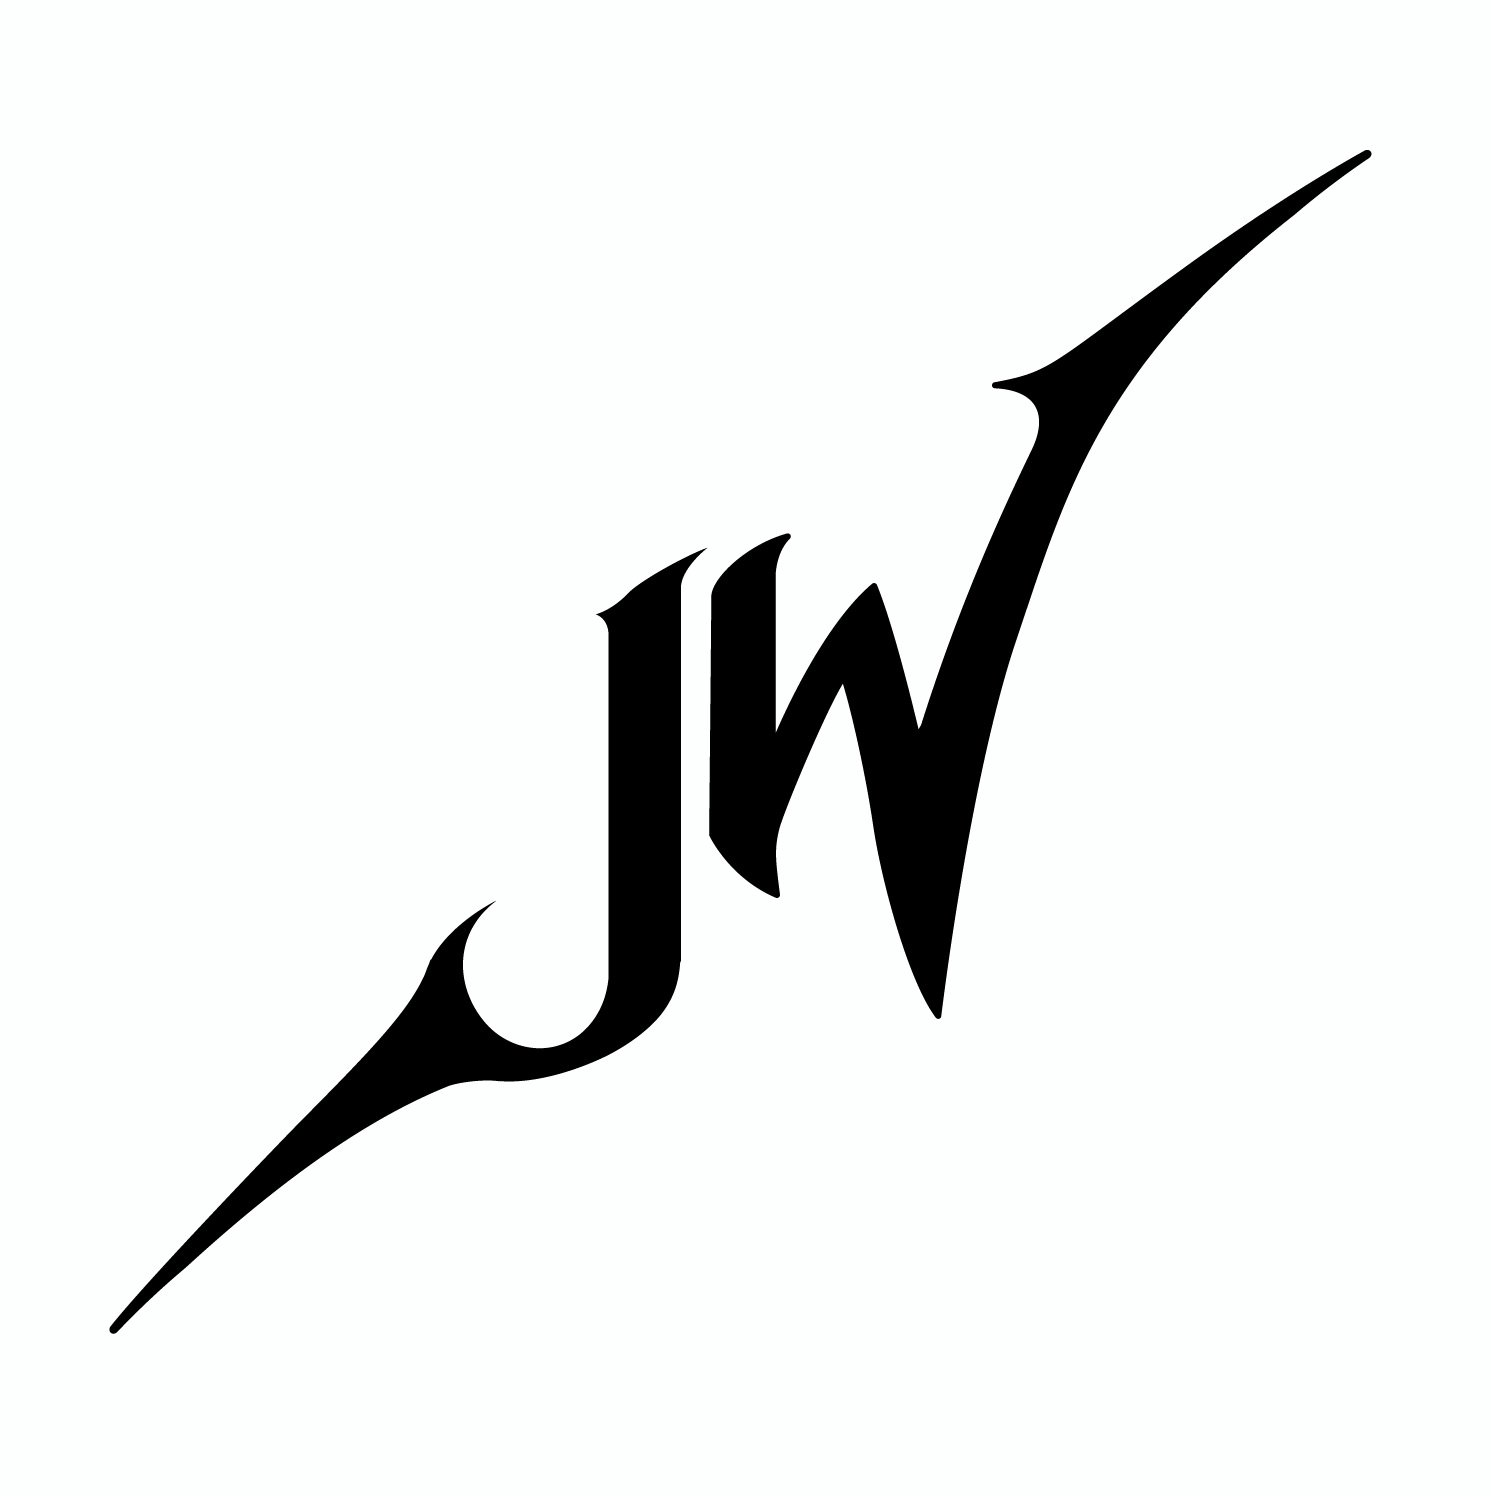 Jw Logo Wallpaper likewise Horse Designs Logos in addition 316237205064002205 besides Most Important Contemporary Fashion further Fondos Para Tumblr Gif Cielo IKdAonrn4. on cool green backgrounds